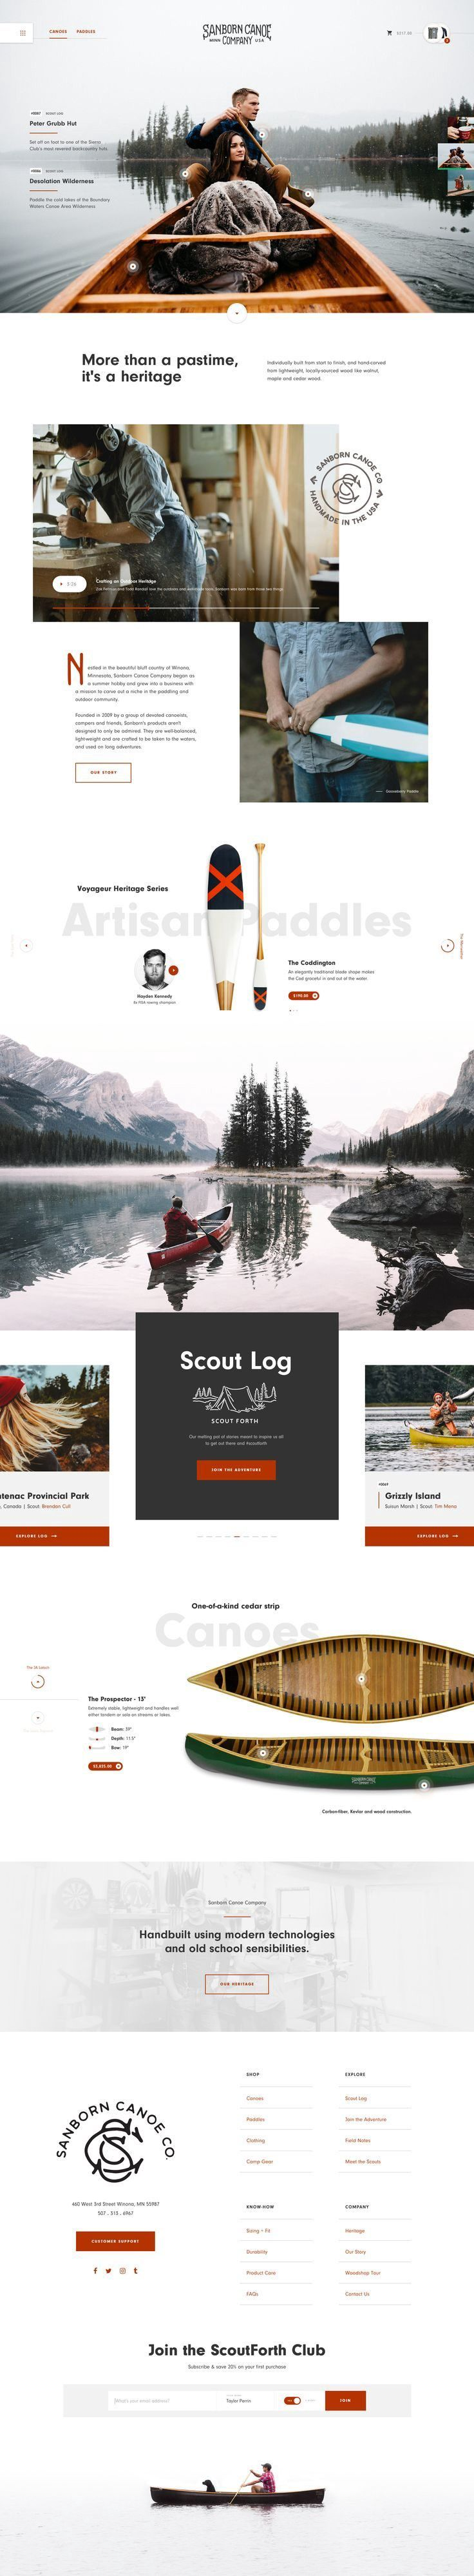 We are back finally with yet another one of those long posts, so get your scrolling fingers out and check out some the new inspiring web designs we've come across! If you like what you see in this…